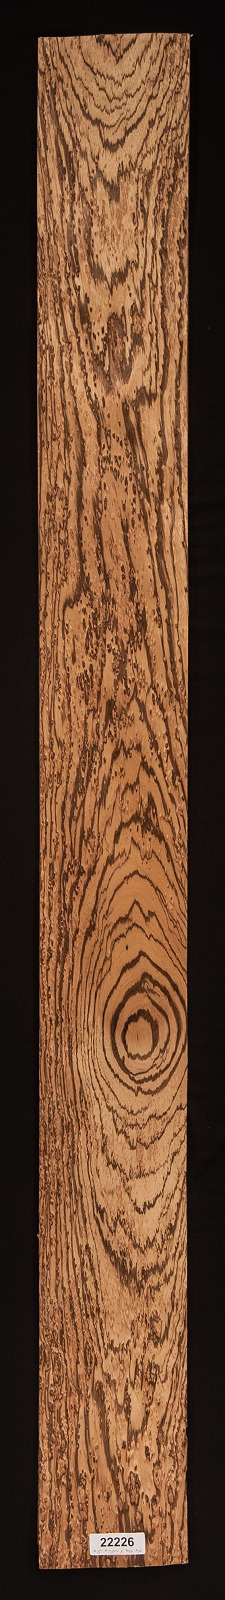 Birds Eye Zebrawood Veneer Sheet